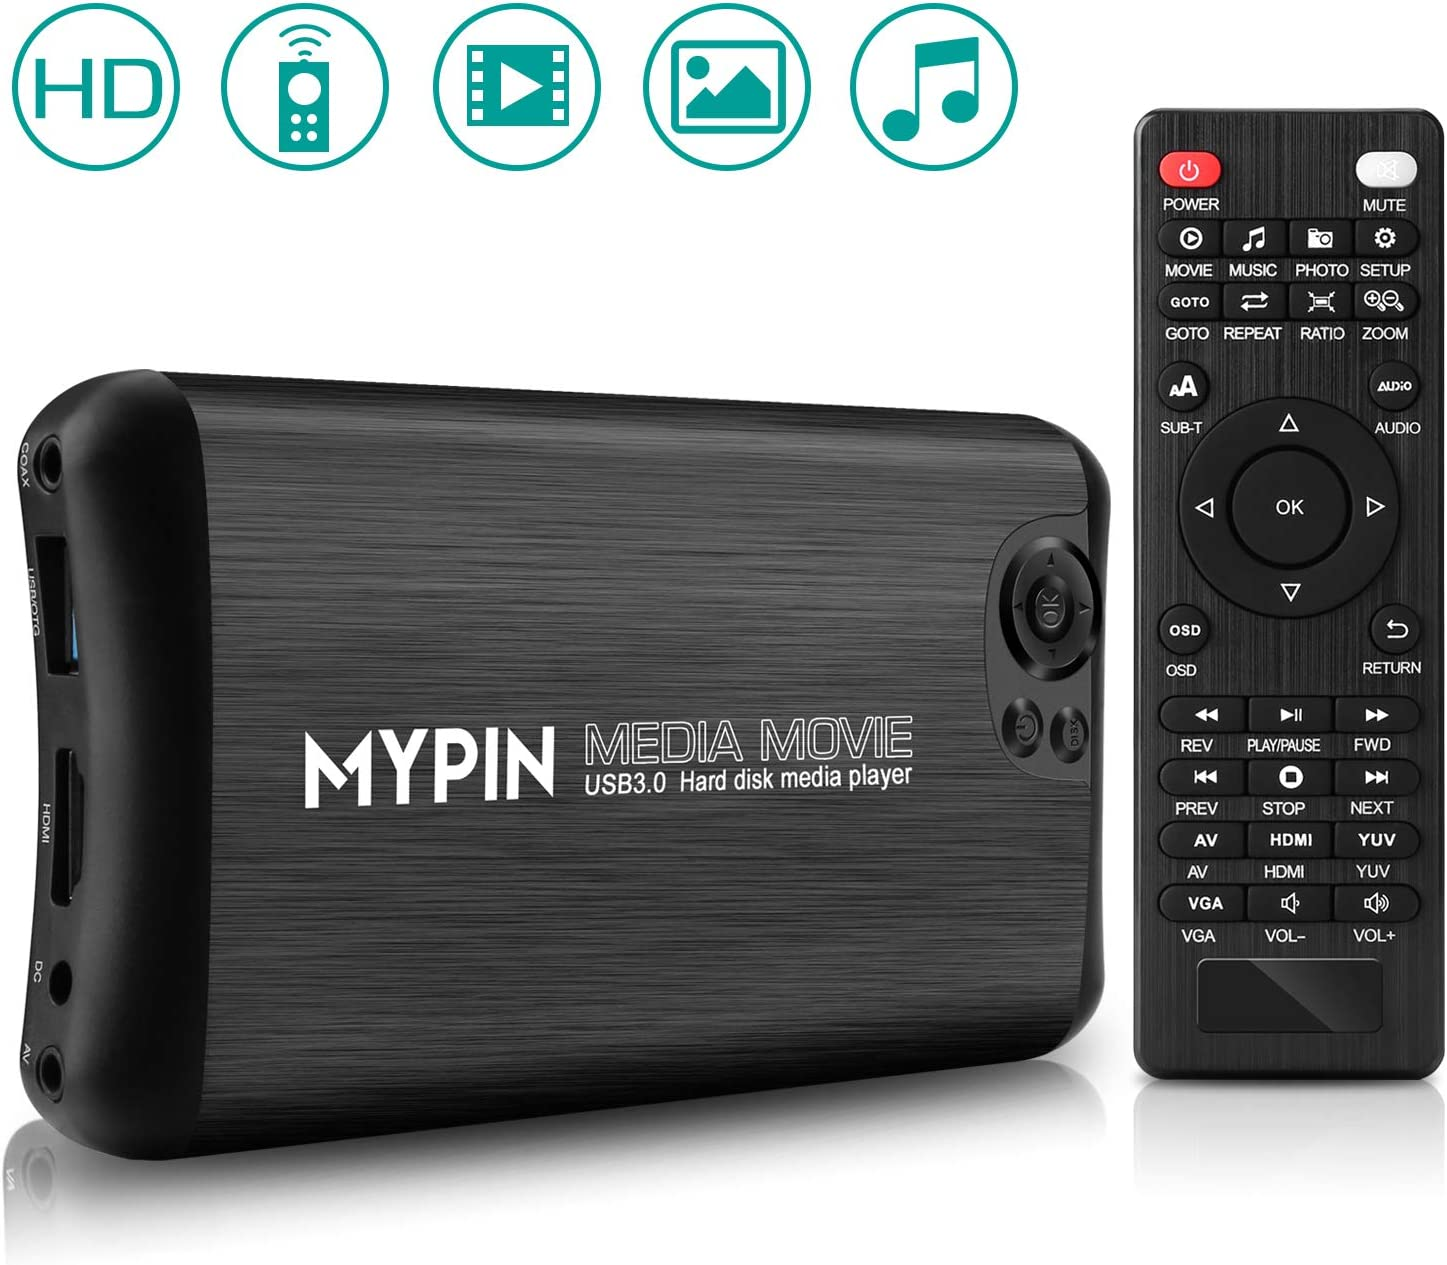 1080P Full HD Ultra Digital Media Player soporta salida HDMI/AV/VGA, reproducir vídeo y fotos con unidad USB/tarjetas SD, HDD/dispositivos externos (compatible con USB 3.0)(ENCHUFE REINO UNIDO)